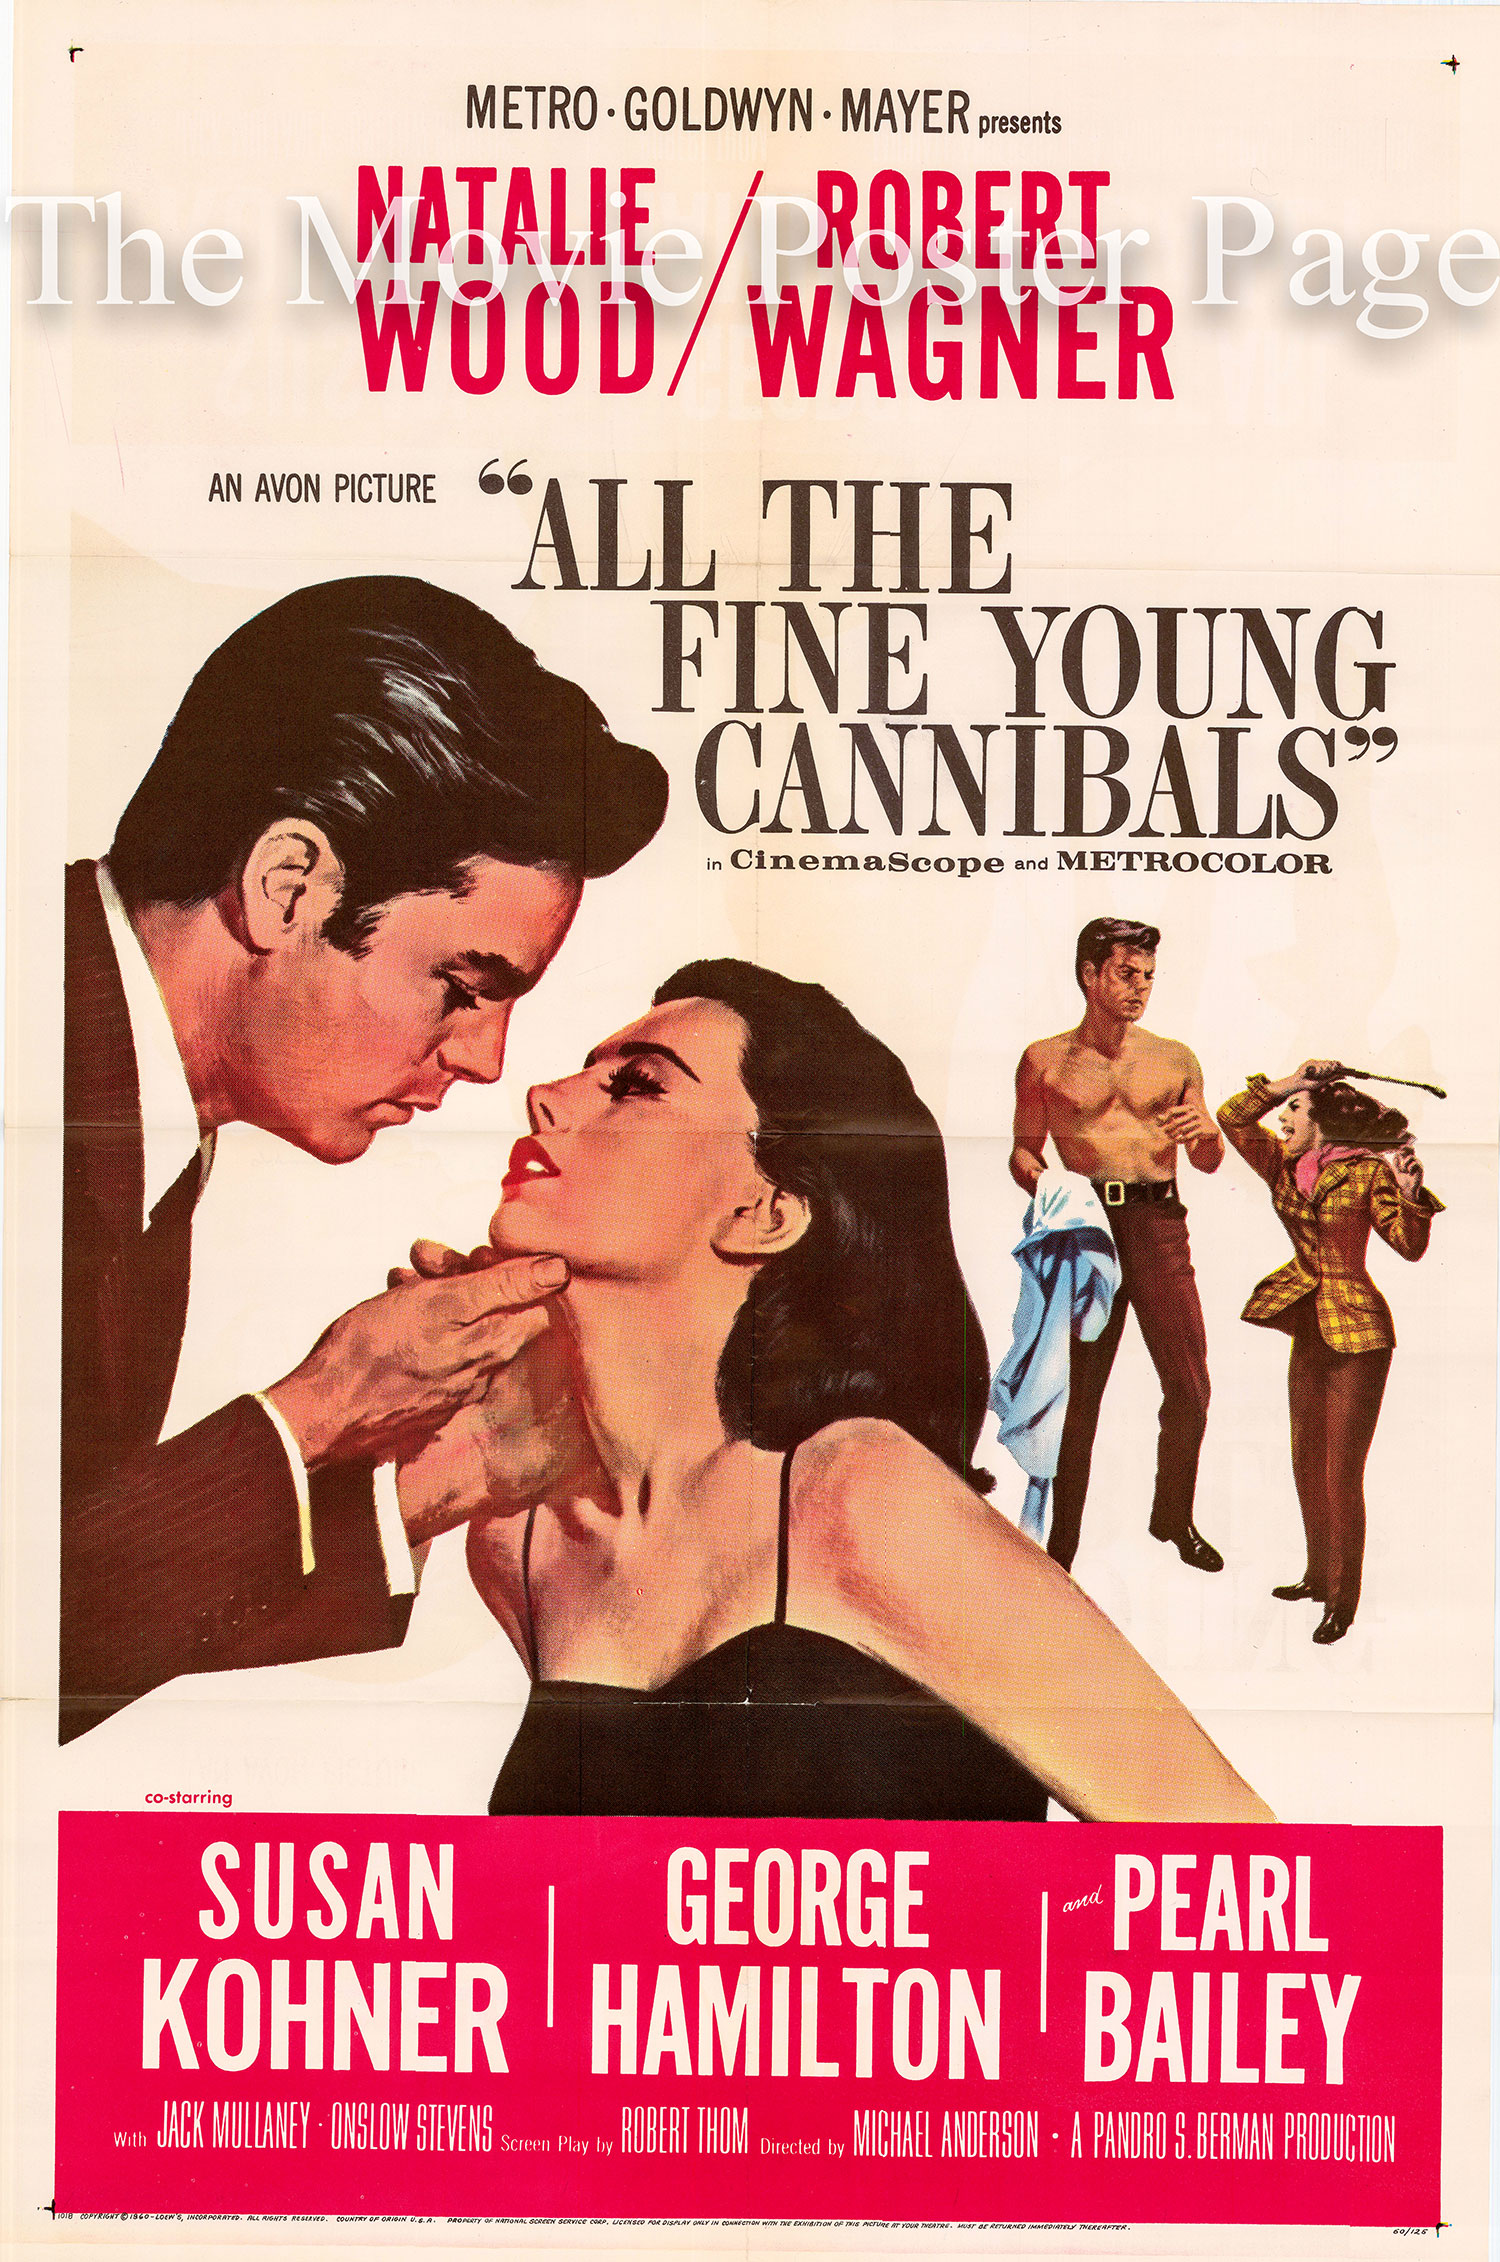 Pictured is a US promotional poster for the 1960 Michael Anderson film All the Fine Young Cannibals starring Natalie Wood.